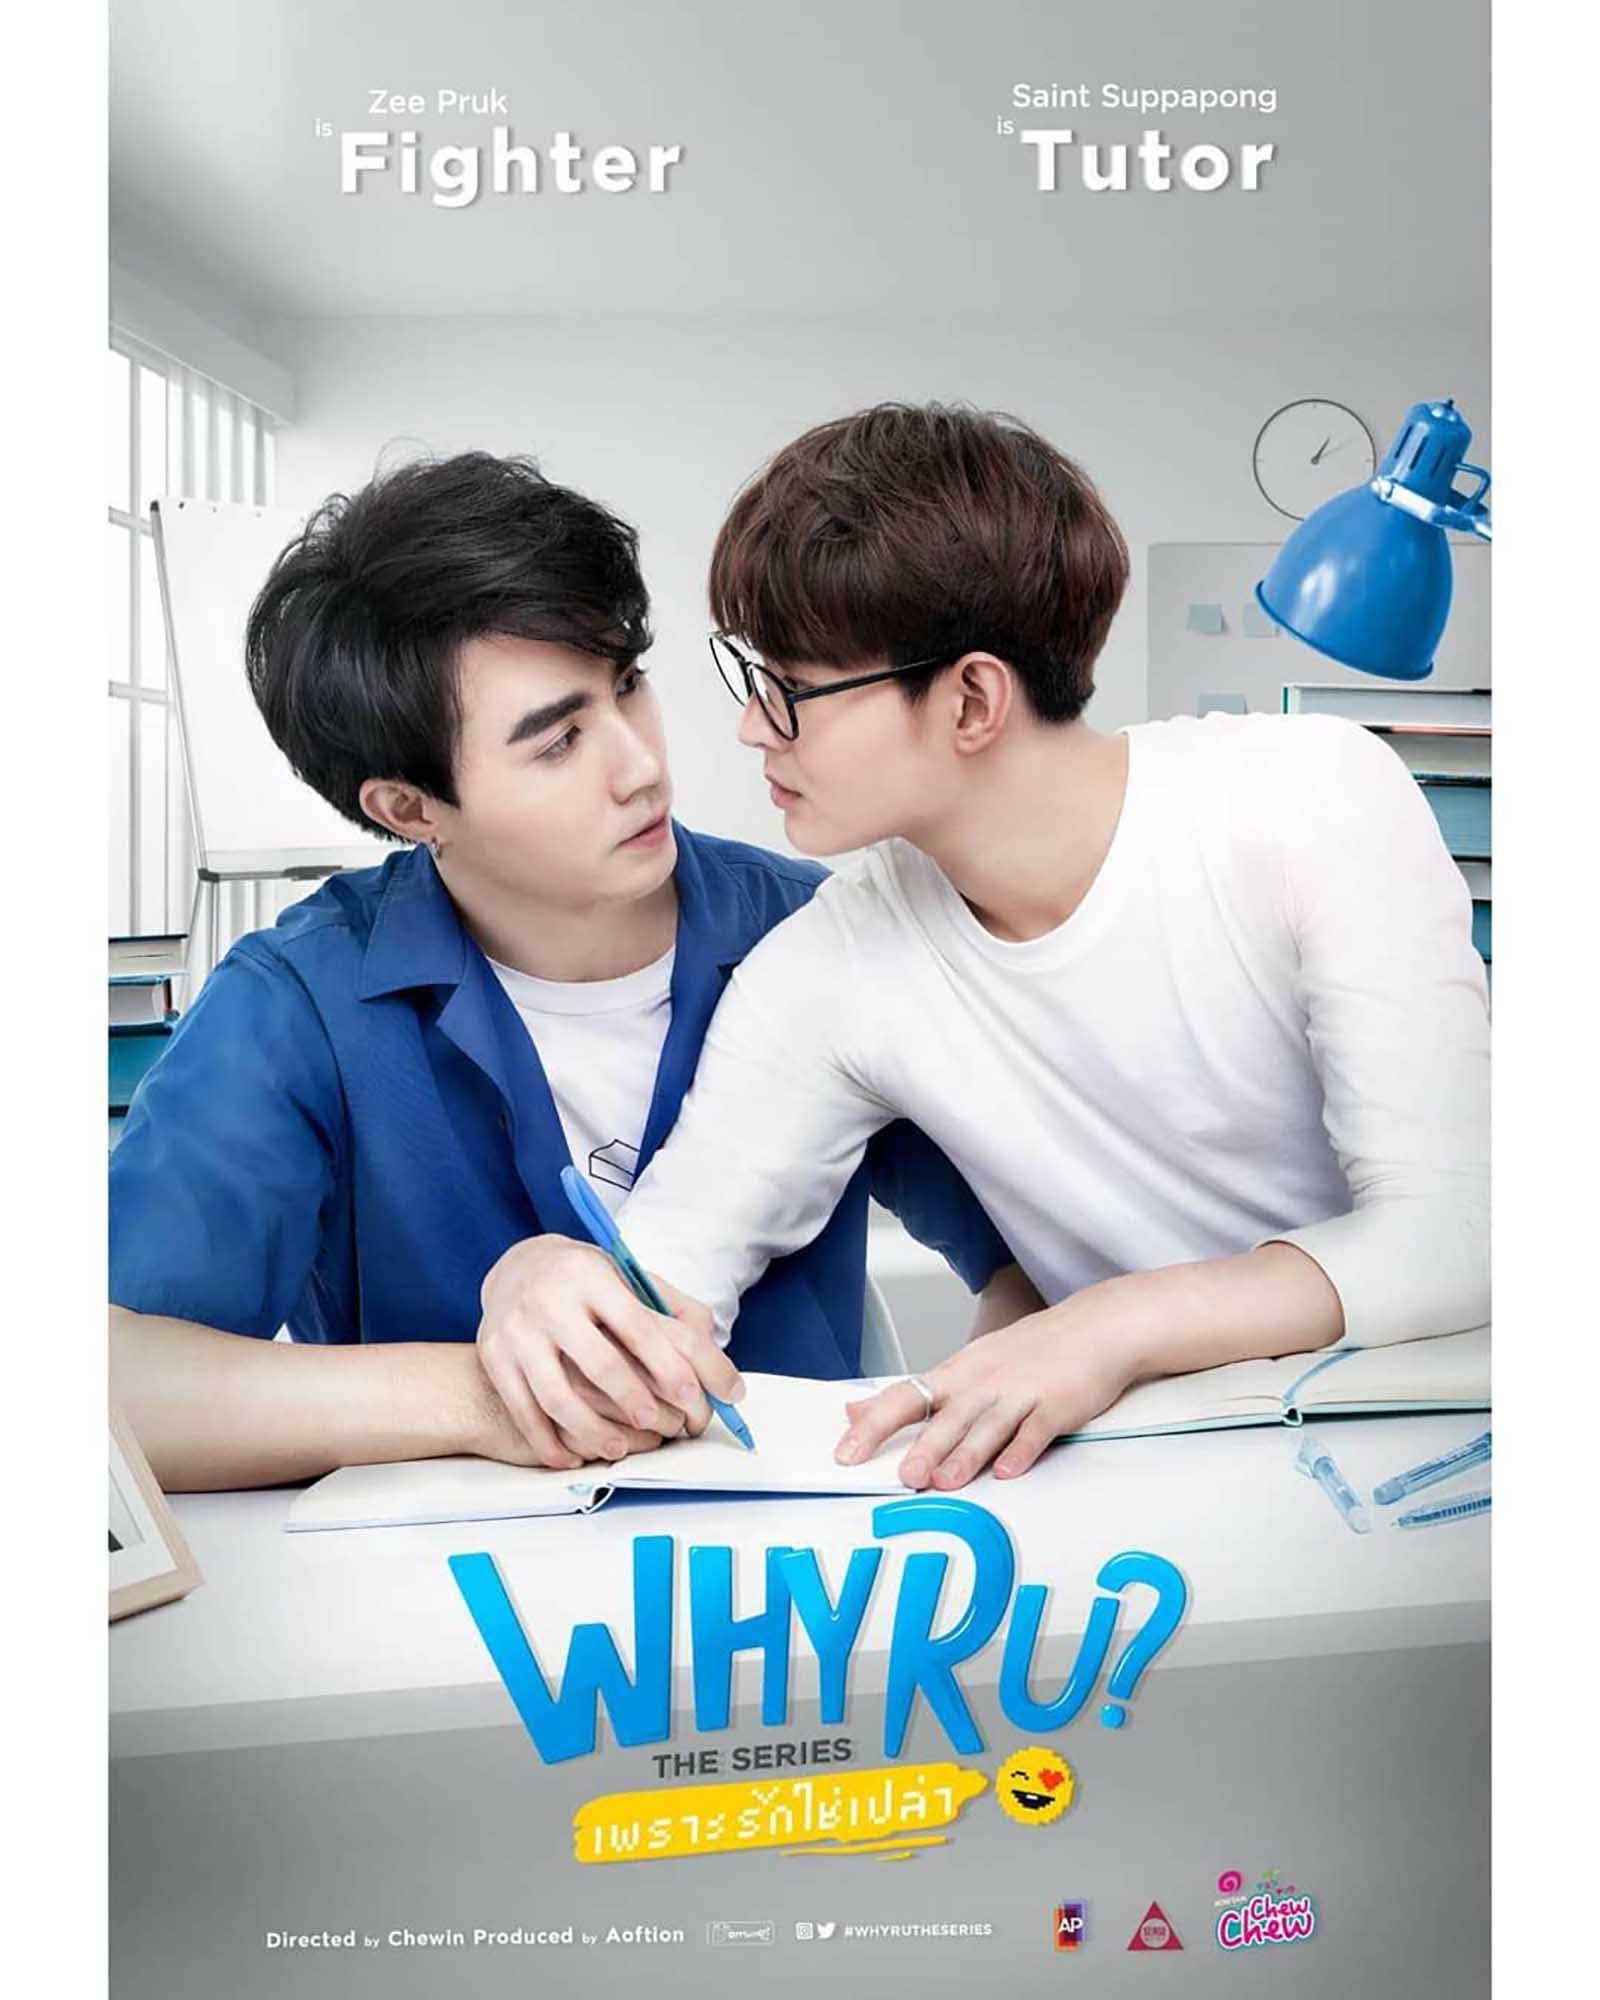 Why R U? The Series may be a hot mess, but the couples are cute and shippable. So let's introduce you to your new favorite Thai drama.